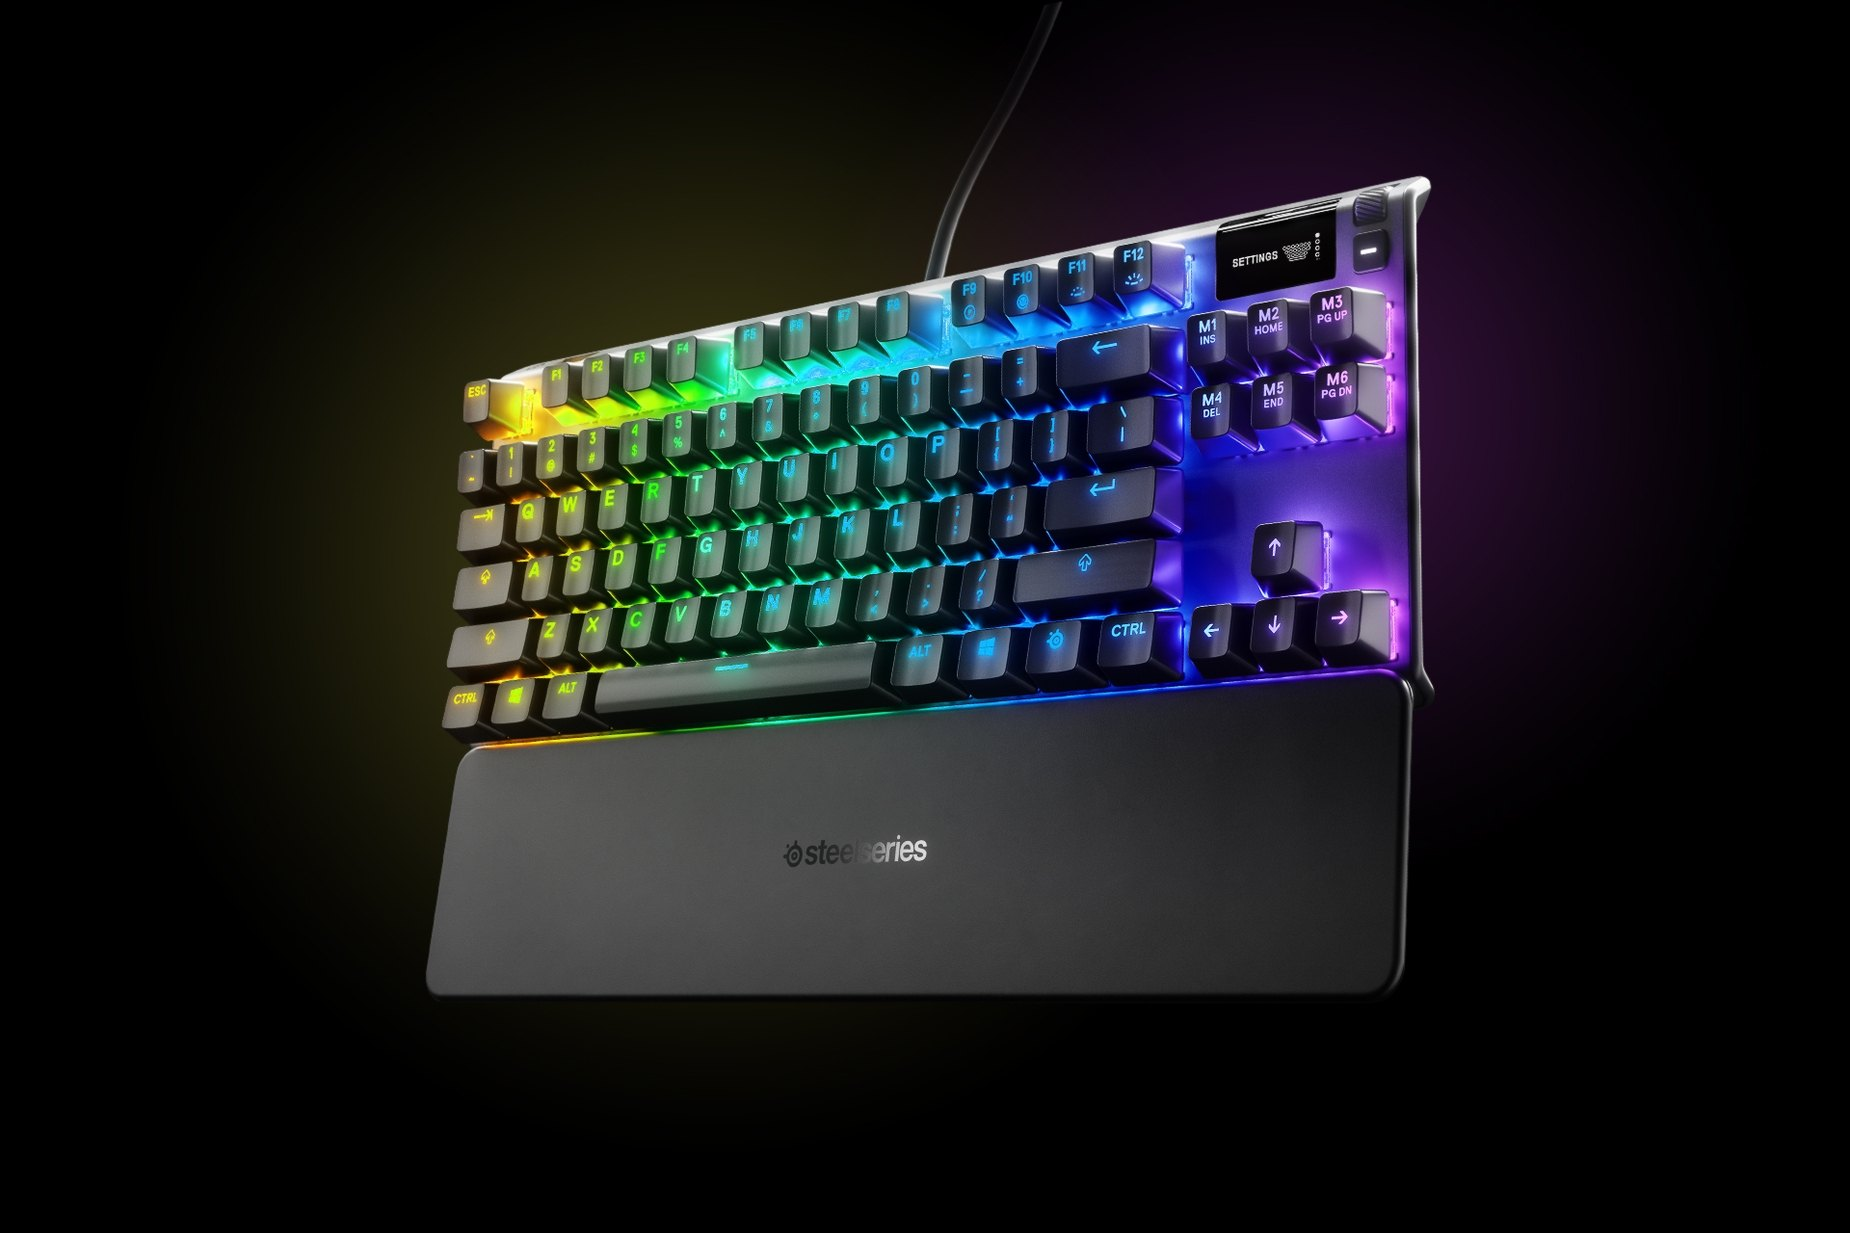 Almanca - Apex 7 TKL (Kırmızı Anahtar) gaming keyboard with the illumination lit up on dark background, also shows the OLED screen and controls used to change settings and adjust audio